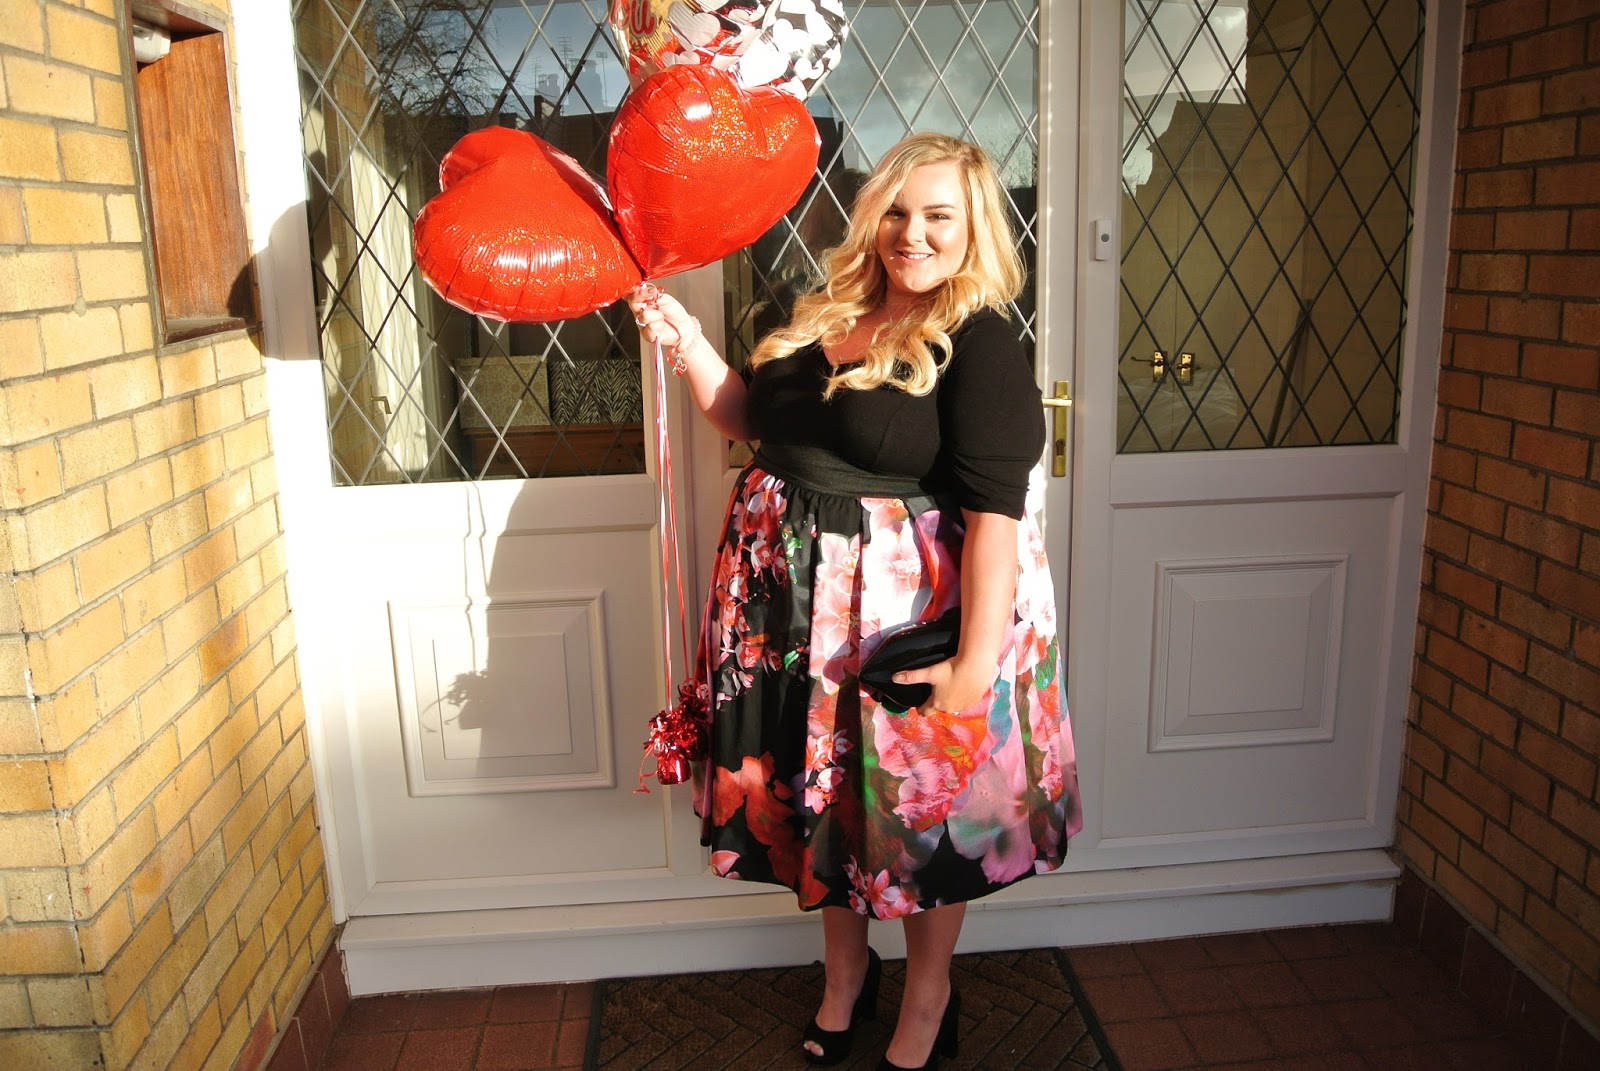 Scarlett and Jo Floral 2 in 1 Dress Valentines Day Plus Size Outfit Inspiration